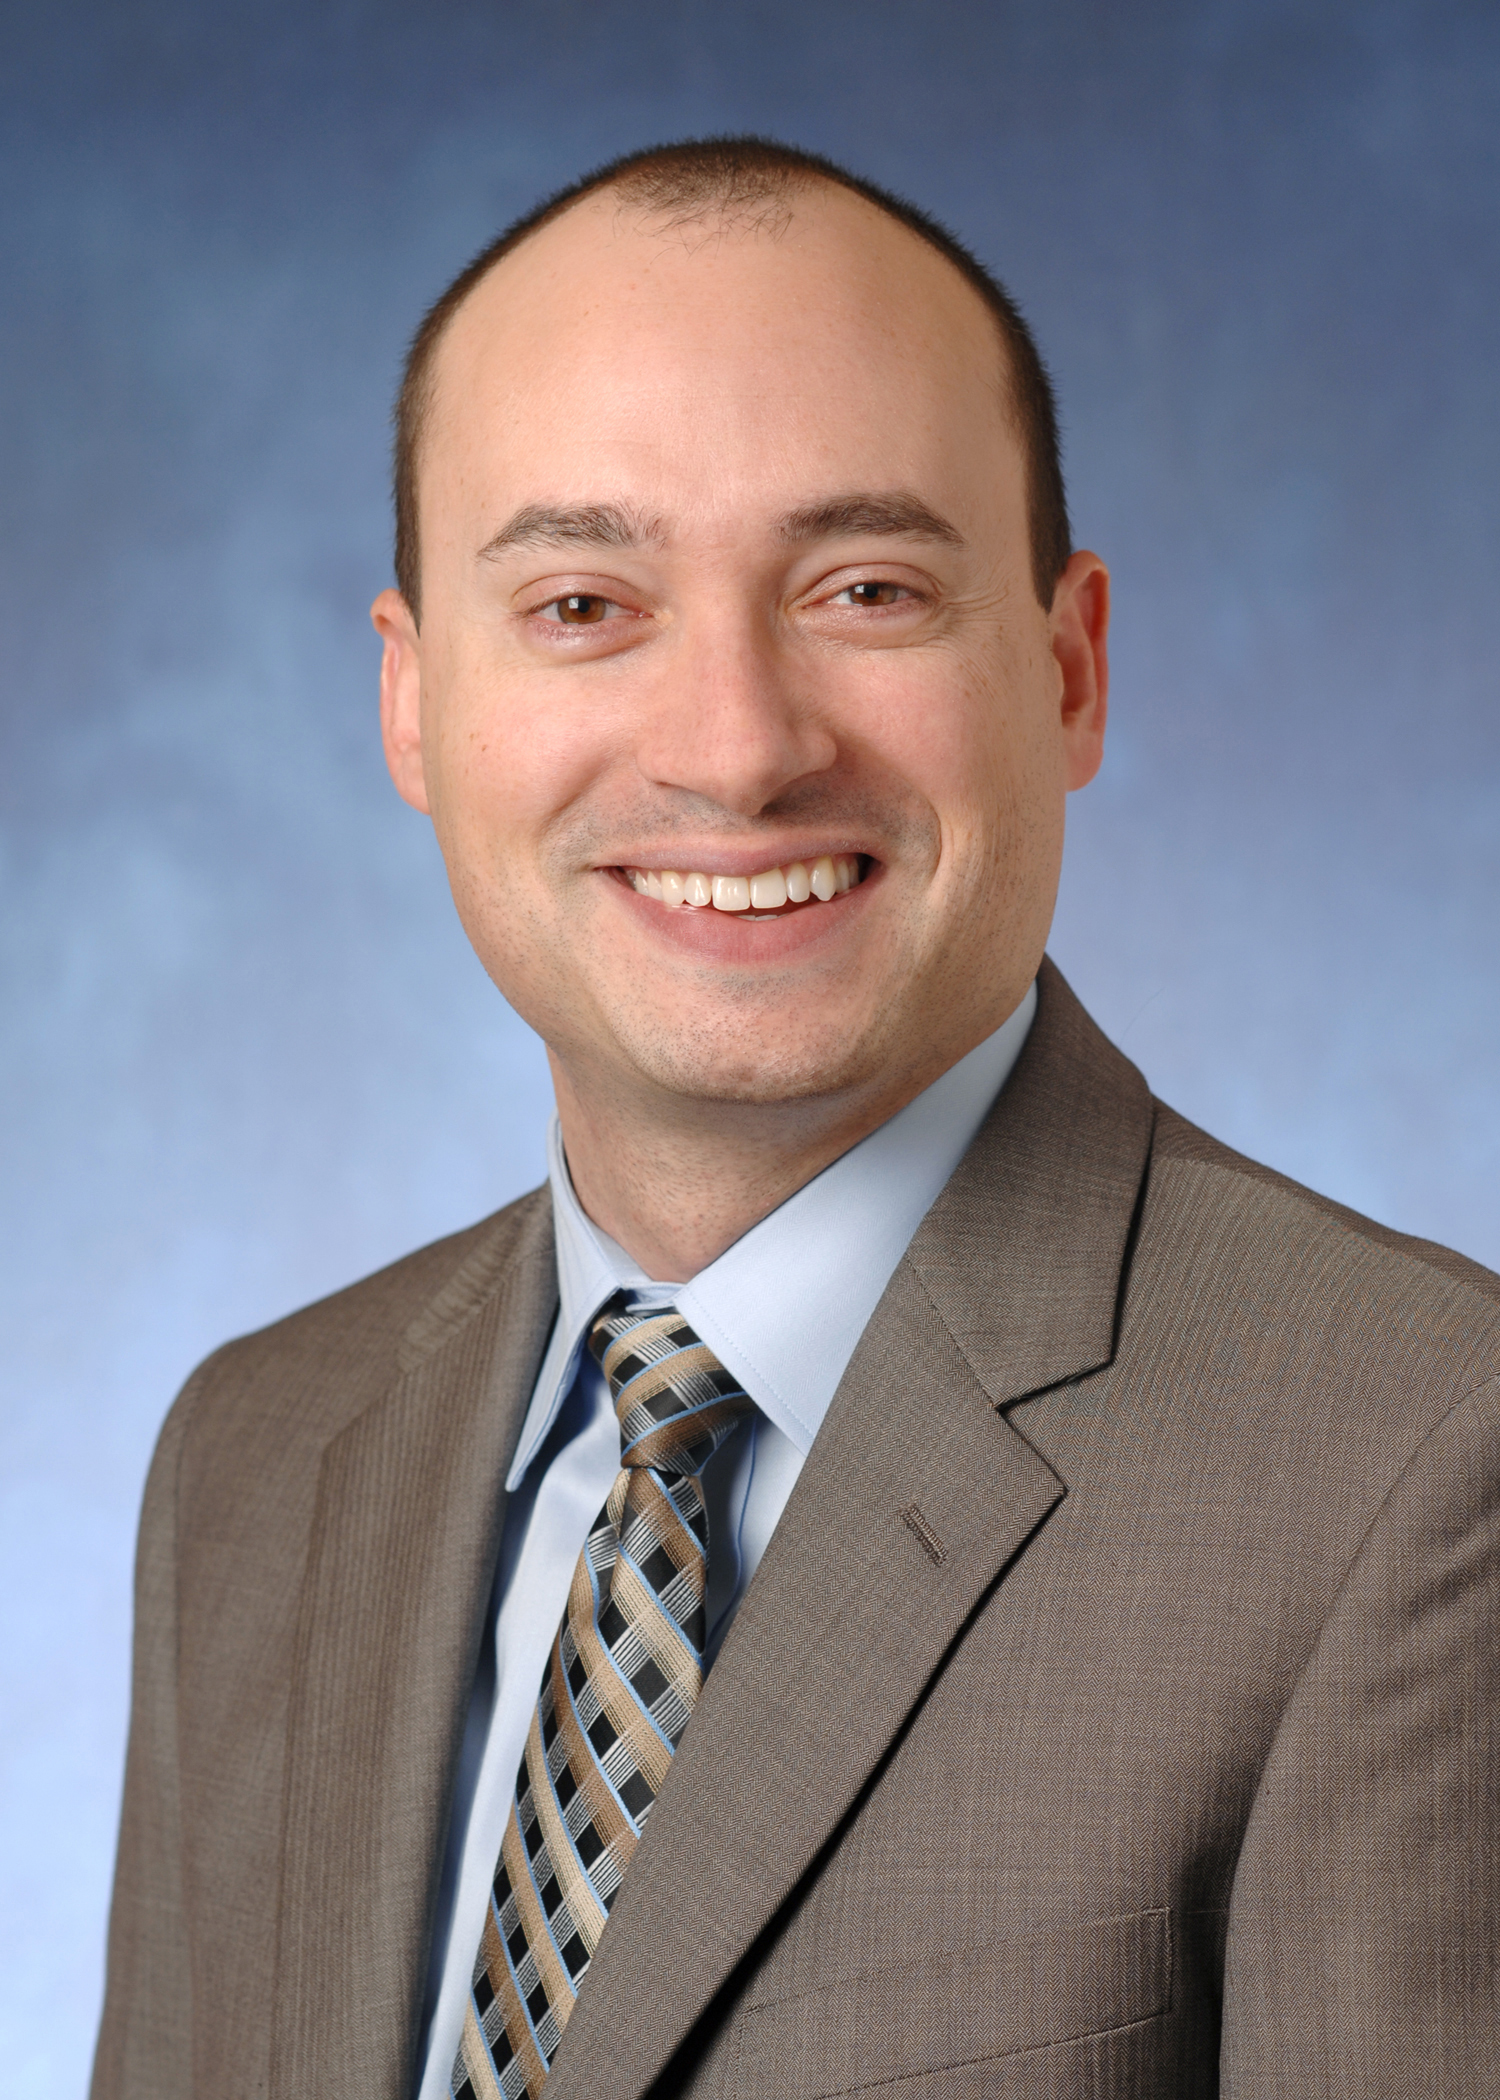 Adam Baughman joins Presidio Bank as Relationship Manager (Photo: Business Wire)